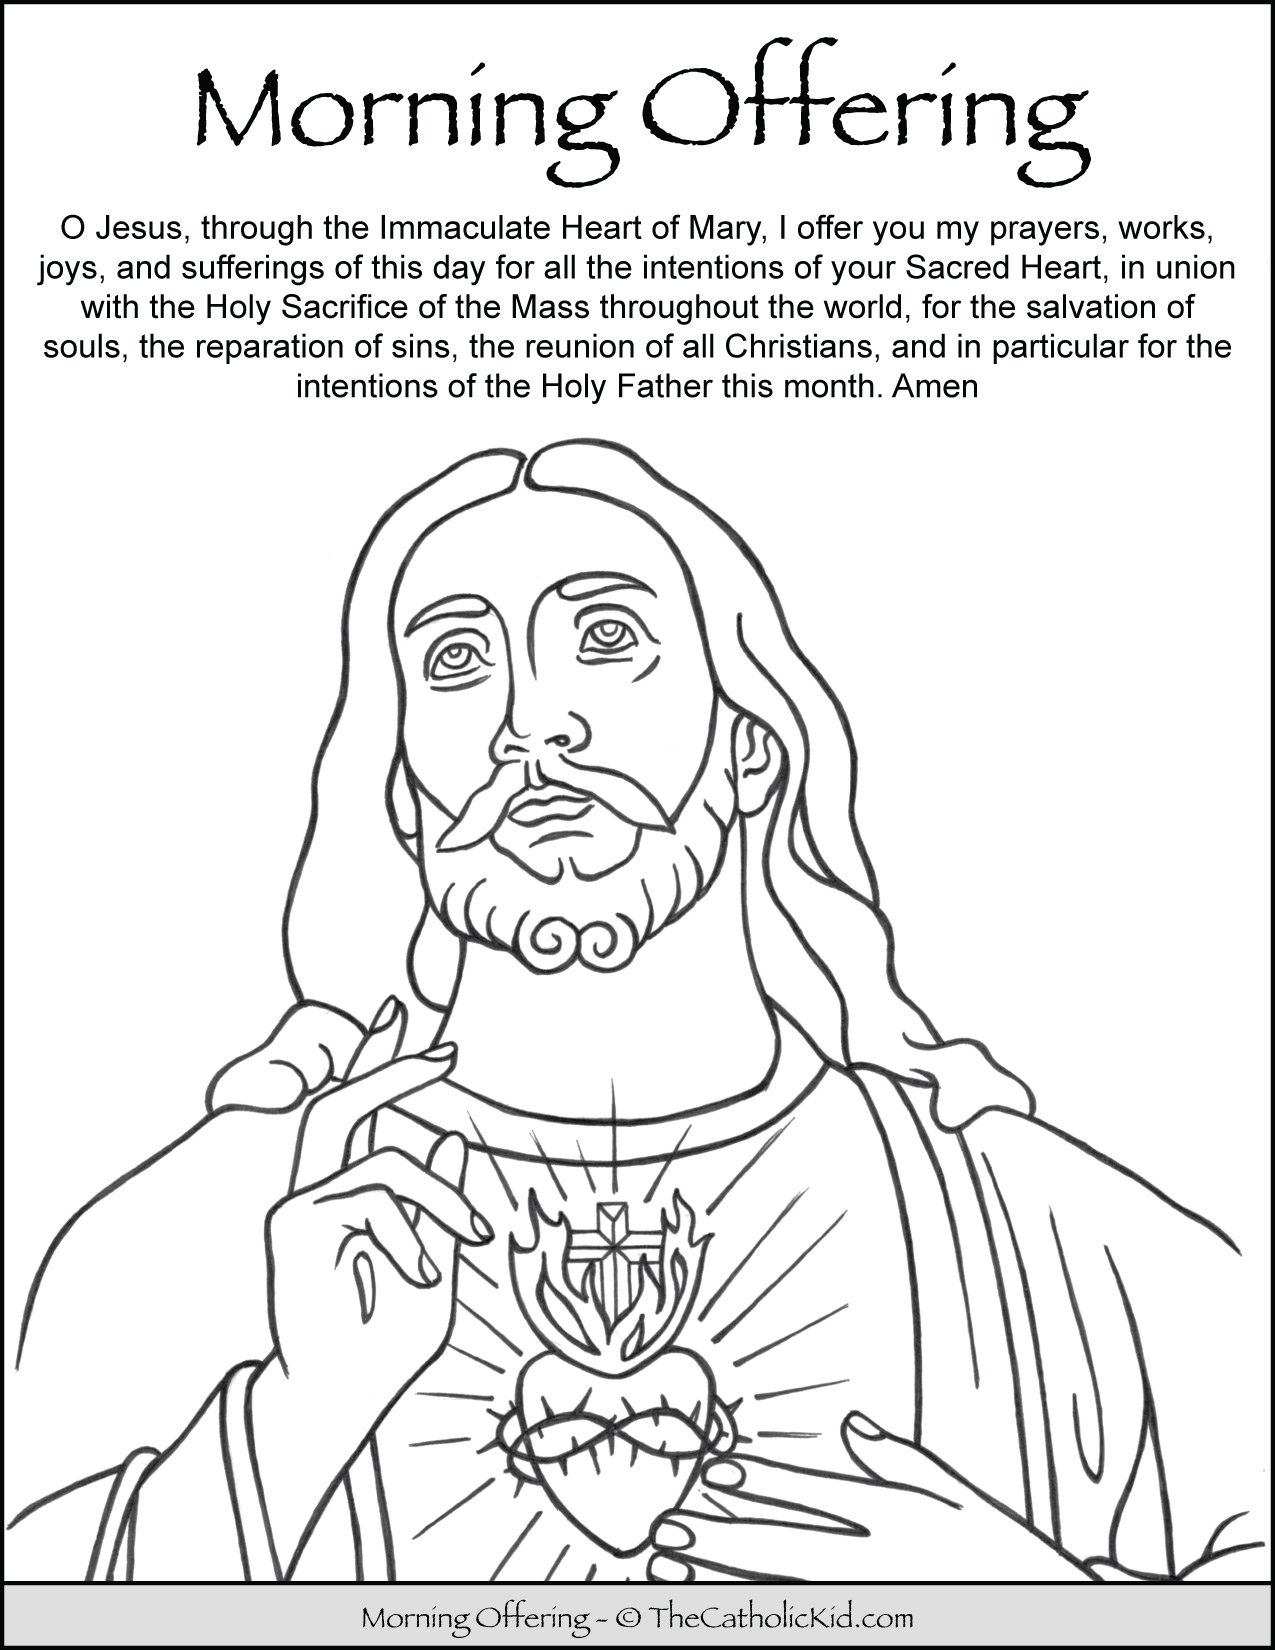 Morning Offering Prayer for Kids Coloring Page